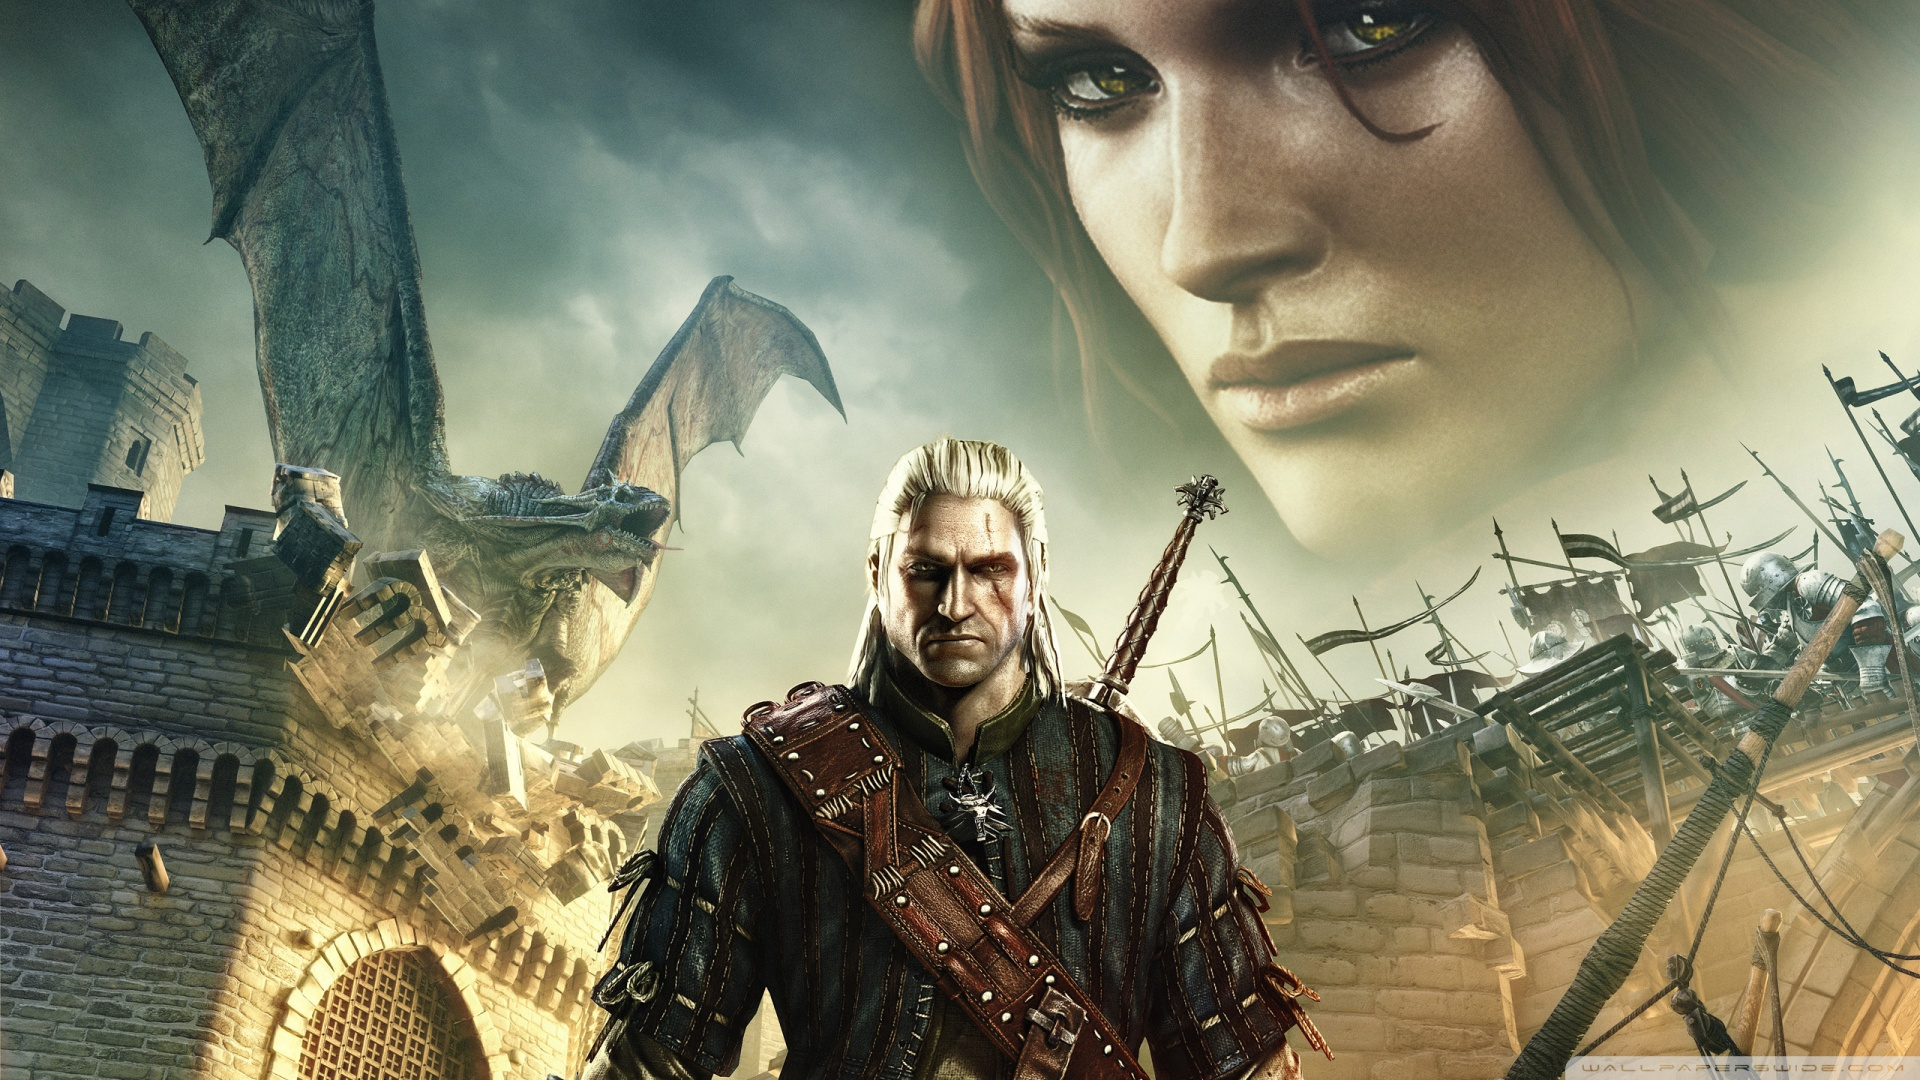 Free Download The Witcher 2 Assassins Of Kings Wallpaper 1920x1080